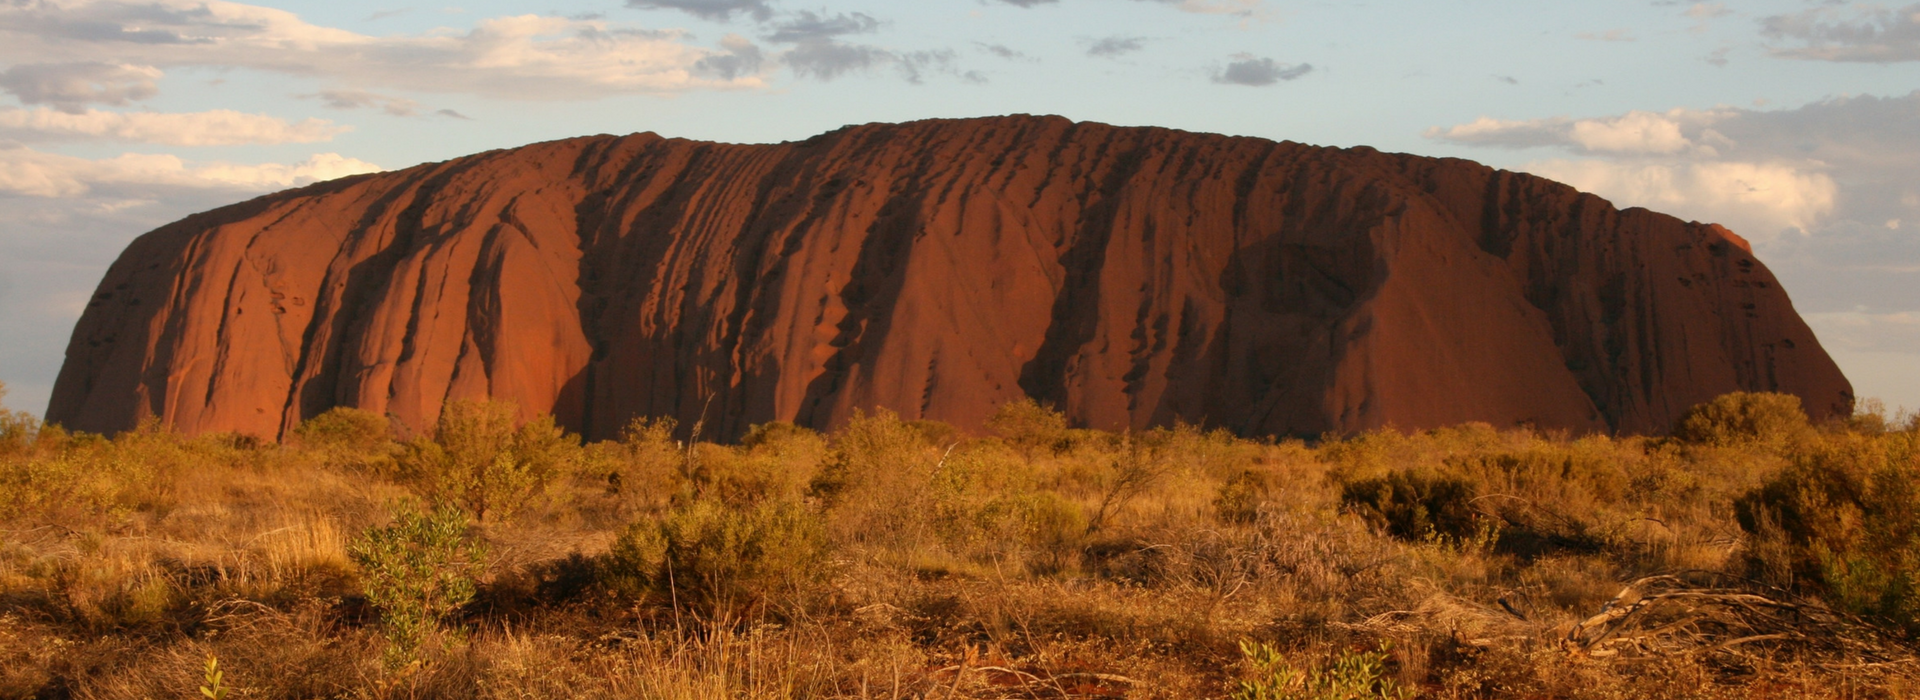 Image of Uluru in Northern Territory